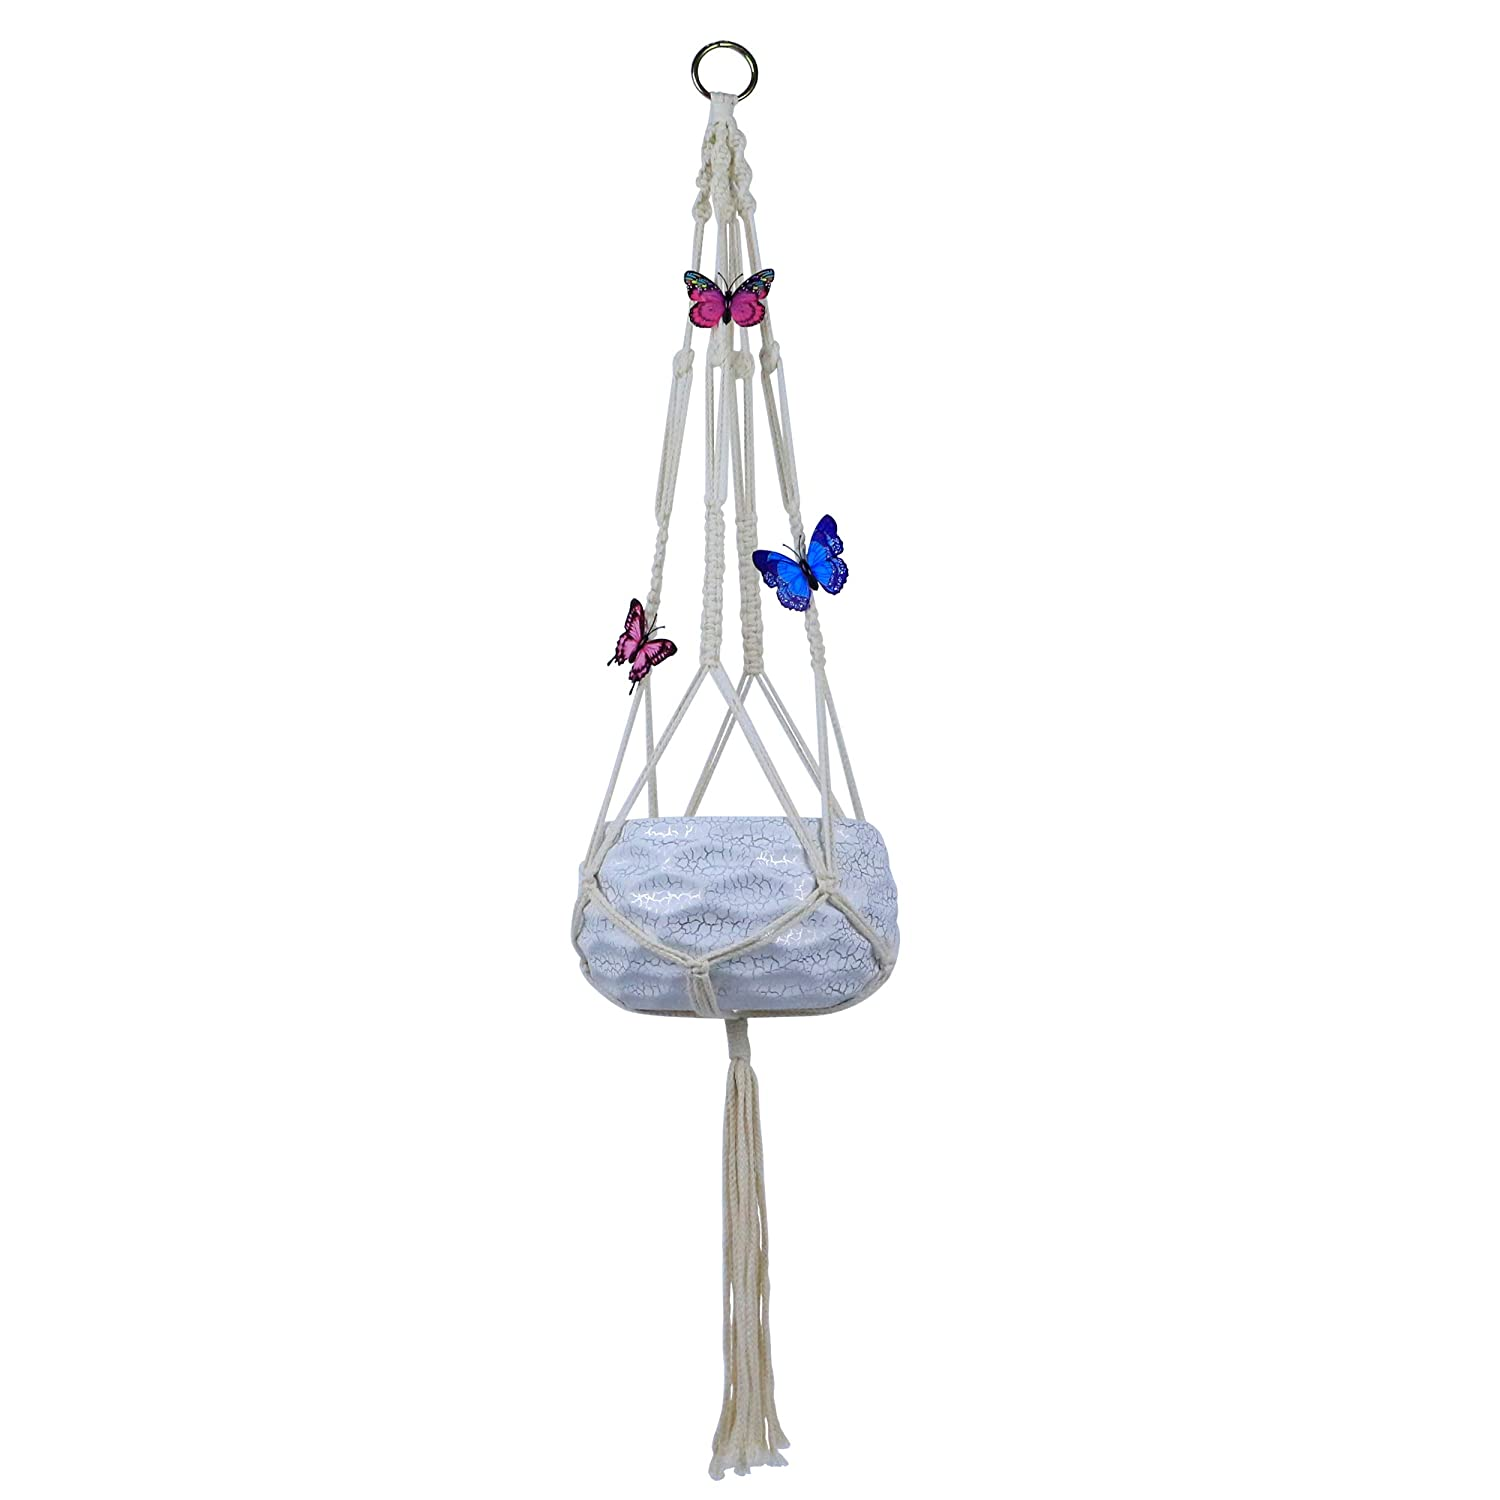 GemEwell Handmade Pure Macrame Hanging Planter Plant Hanger Basket Strong Cotton Rope Pots Holder Bohemian Style 4 Legs with Artificial Butterflies 38 Inch, Flat Weaving Pack of 1